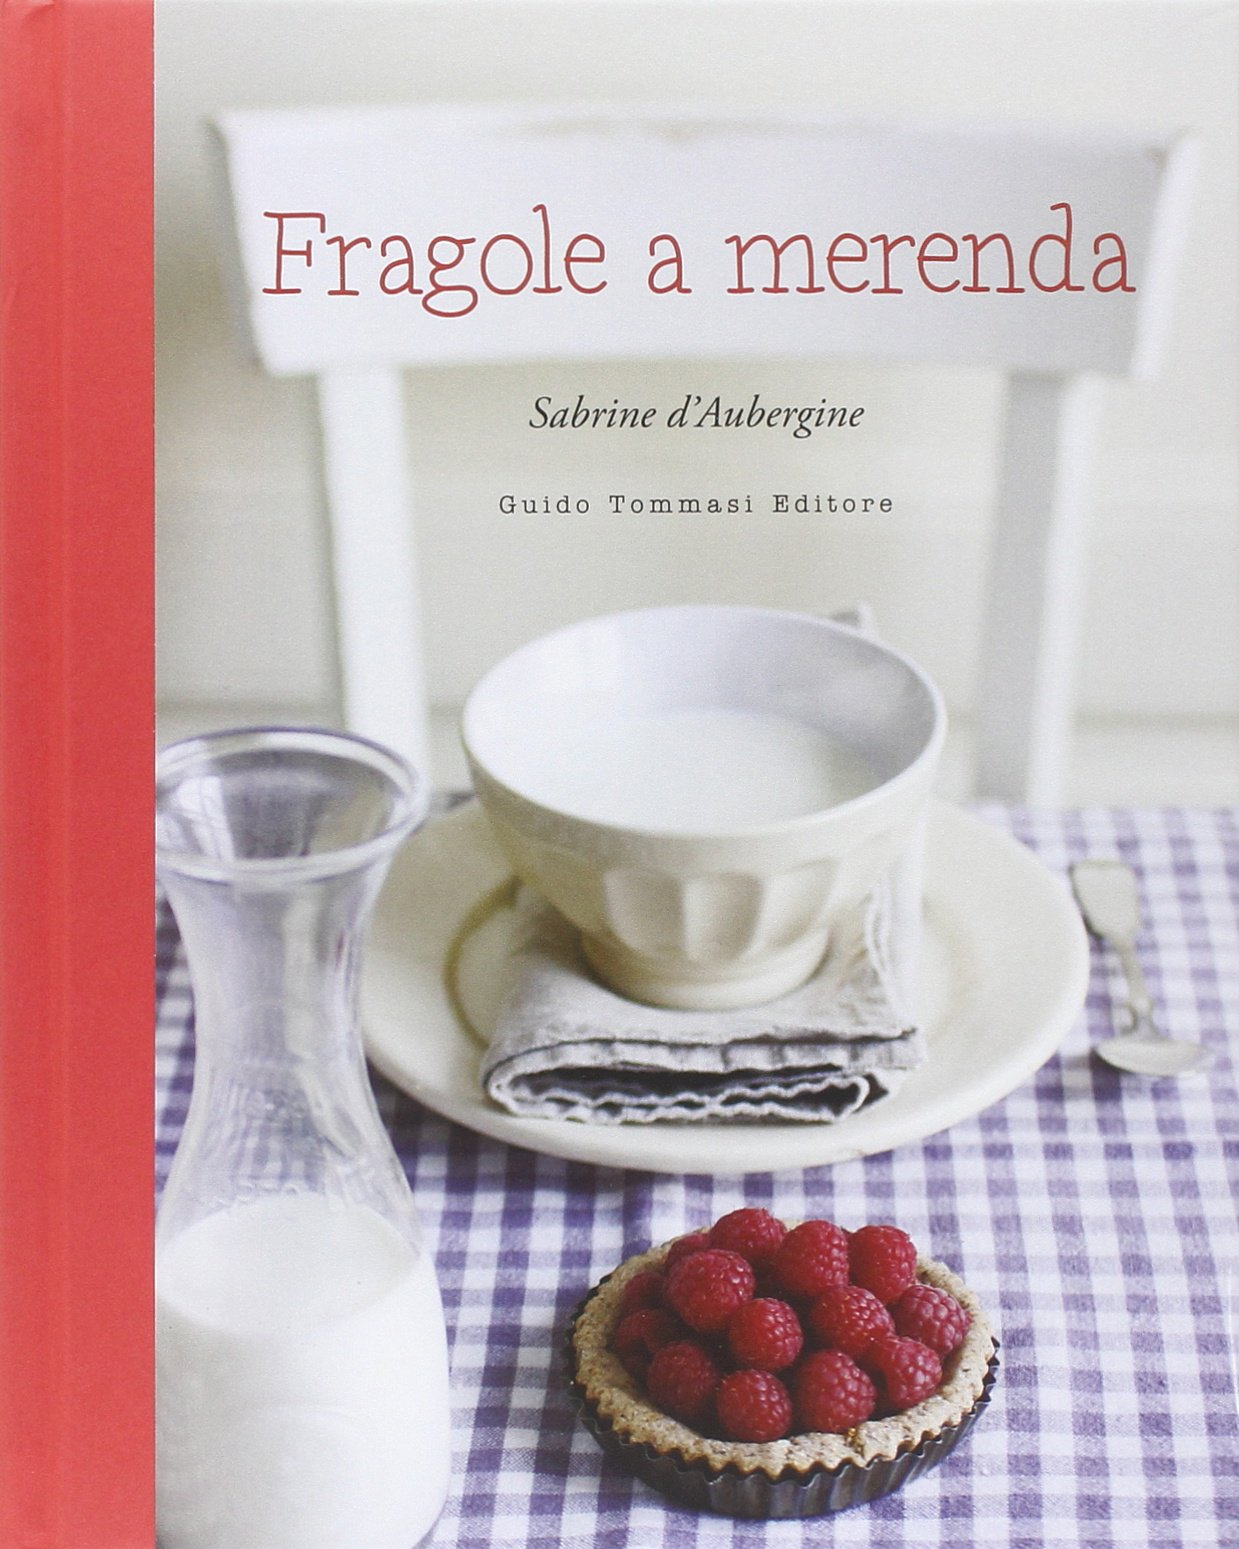 Top Amazon.it: Fragole a merenda - Sabrine D'Aubergine - Libri FN83